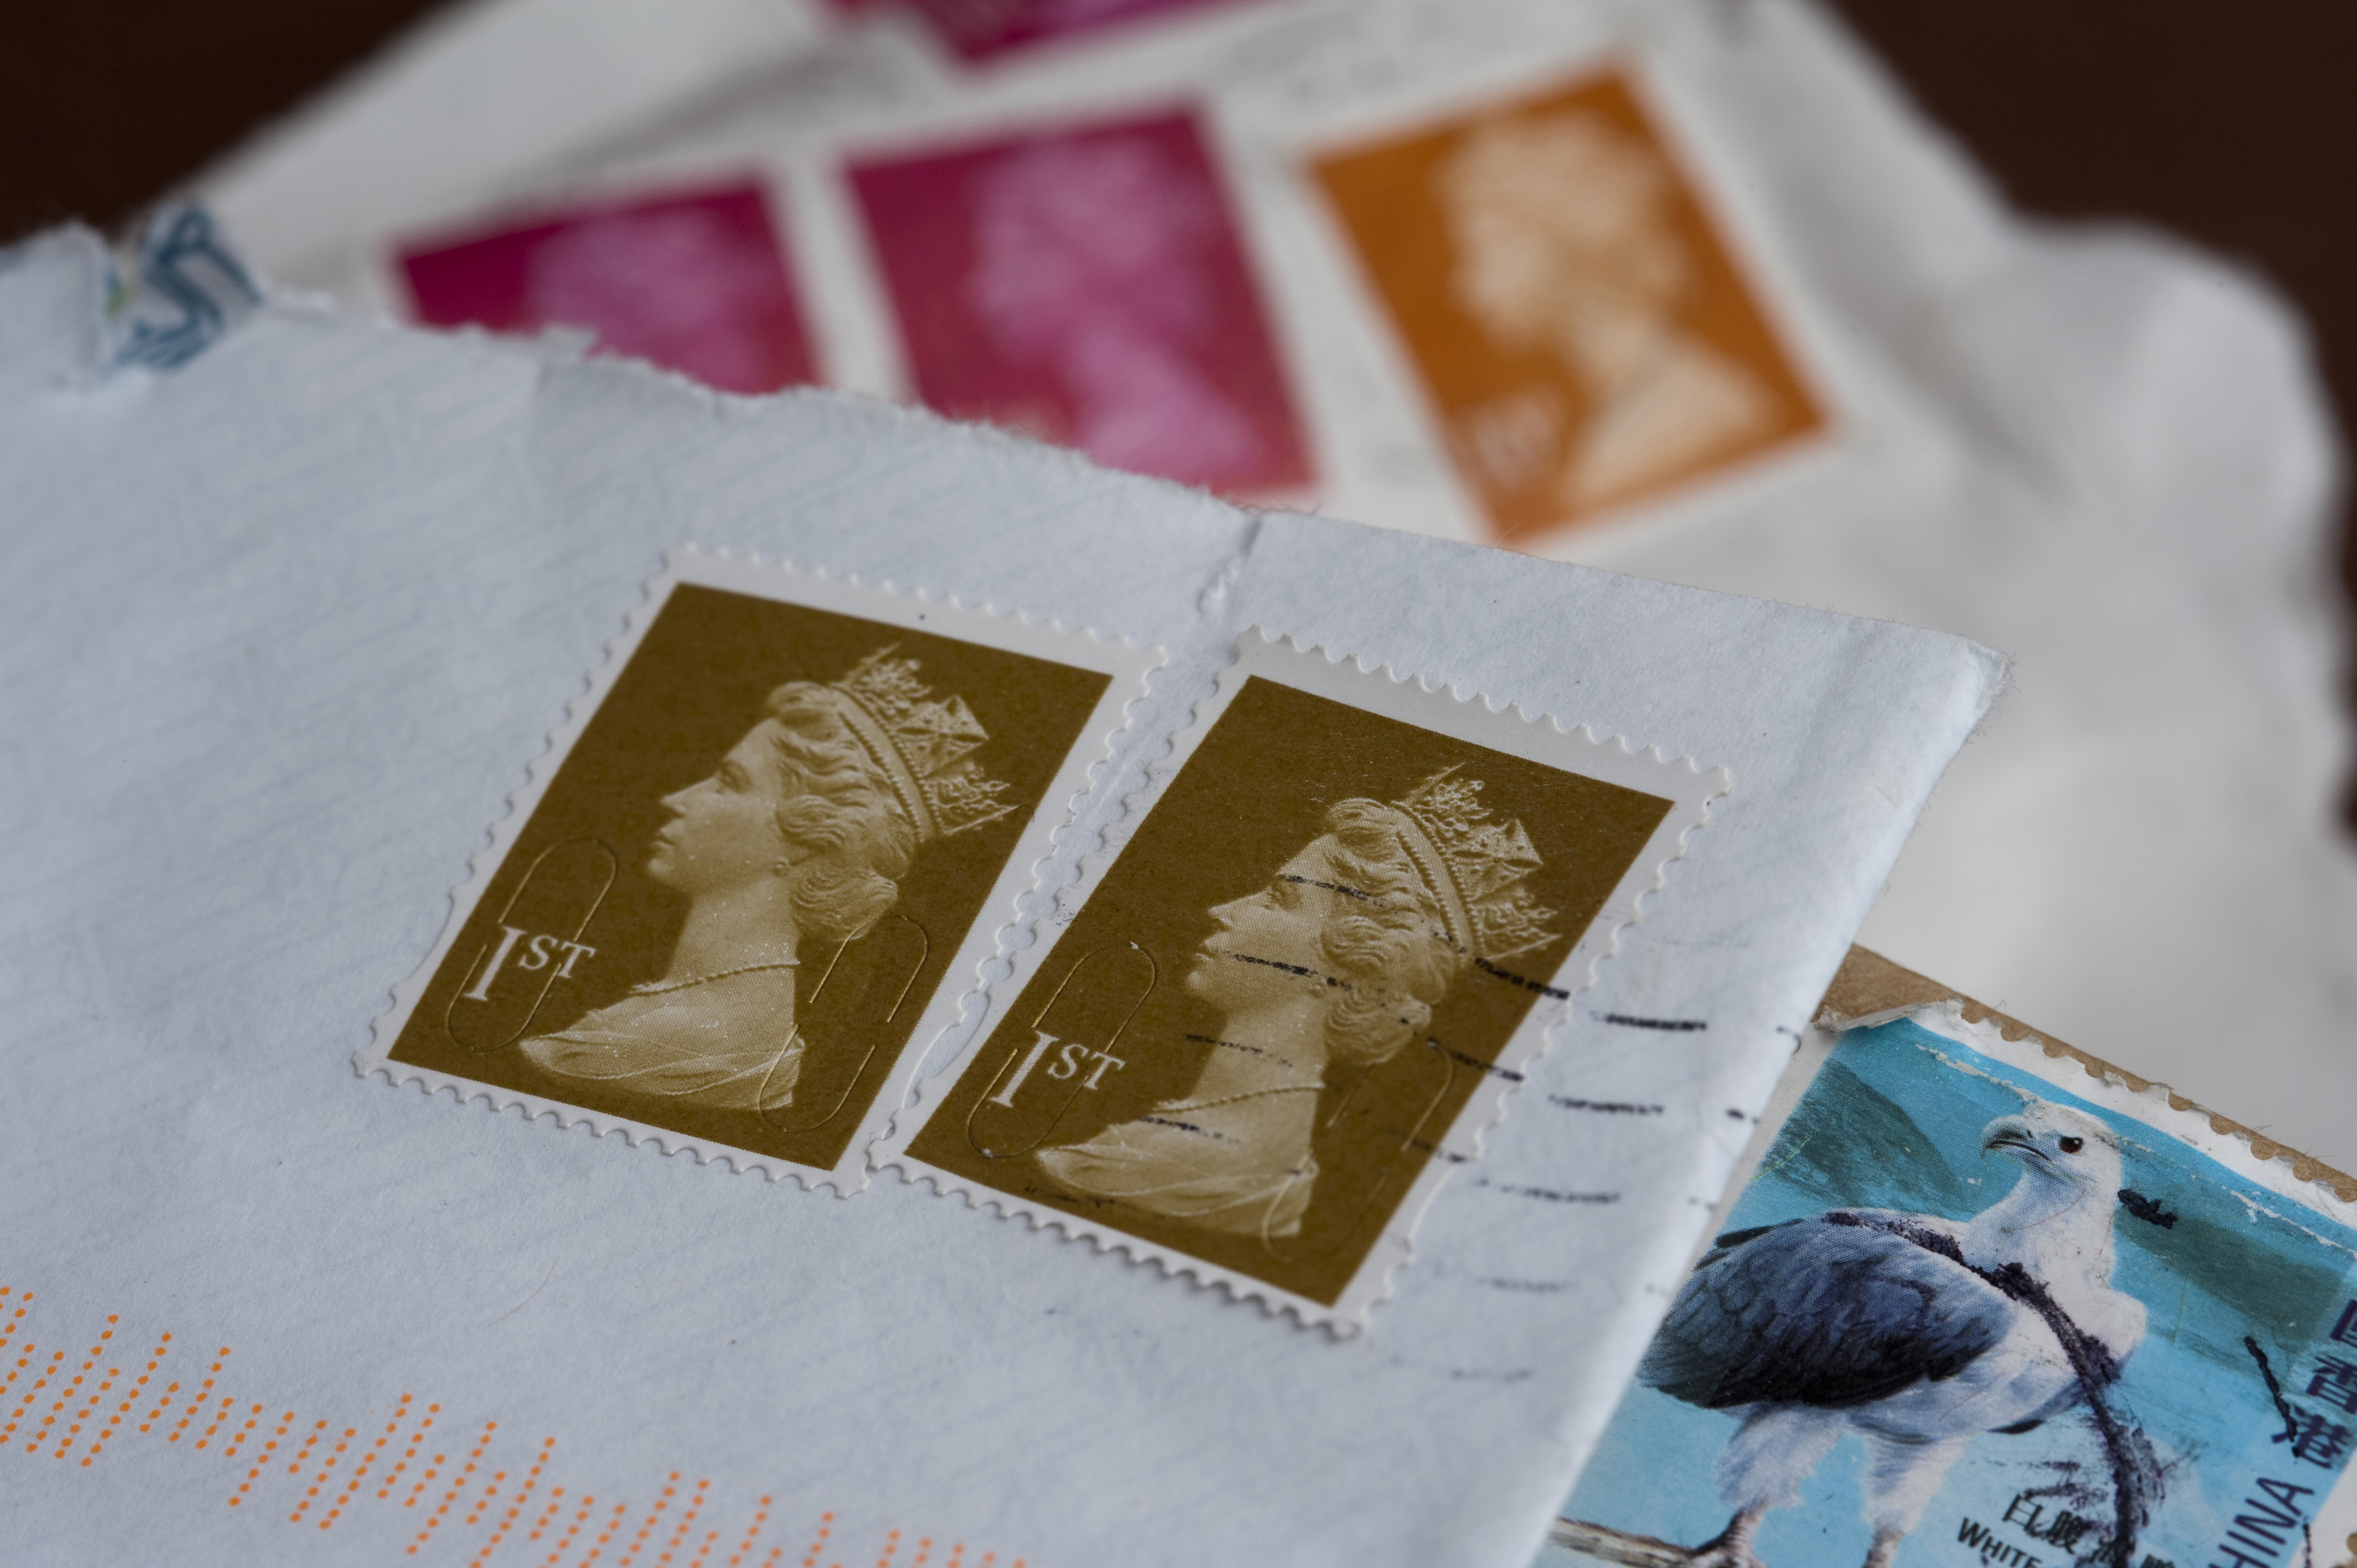 Free Stock 5358 Cancelled British postage stamps